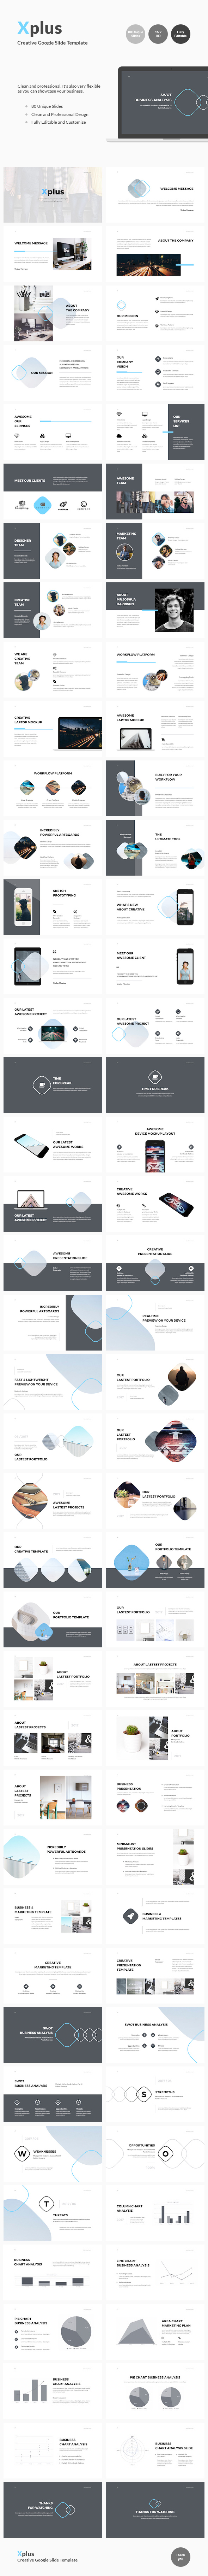 Xplus - Creative Google Slide Template - Google Slides Presentation Templates